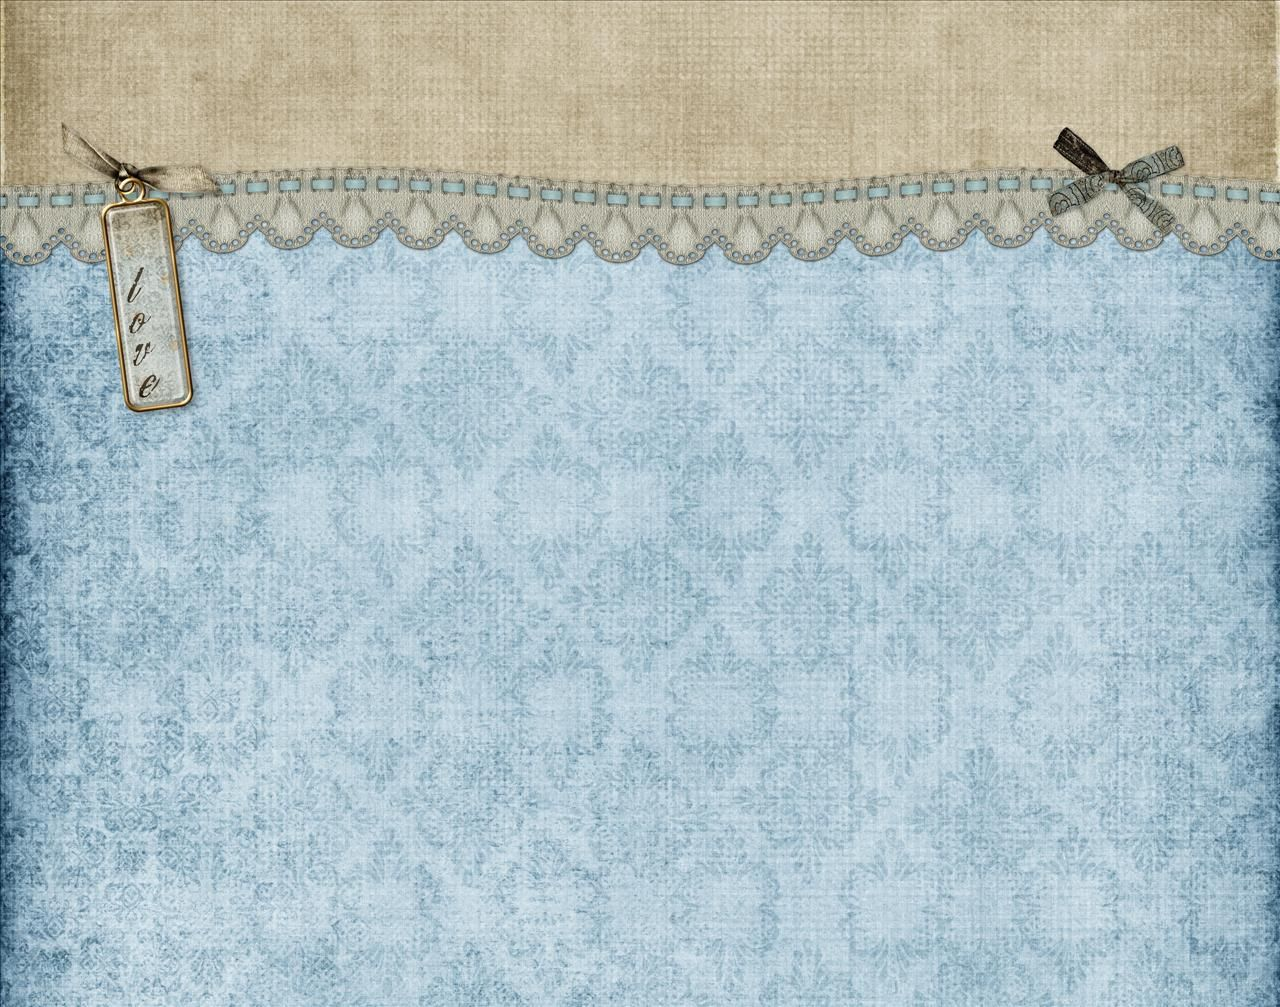 http://backgrounds.picaboo.com/download/a0/06/a0673b0412664d2eb28475565677c61f/beautiful_blue_with_lace.jpg